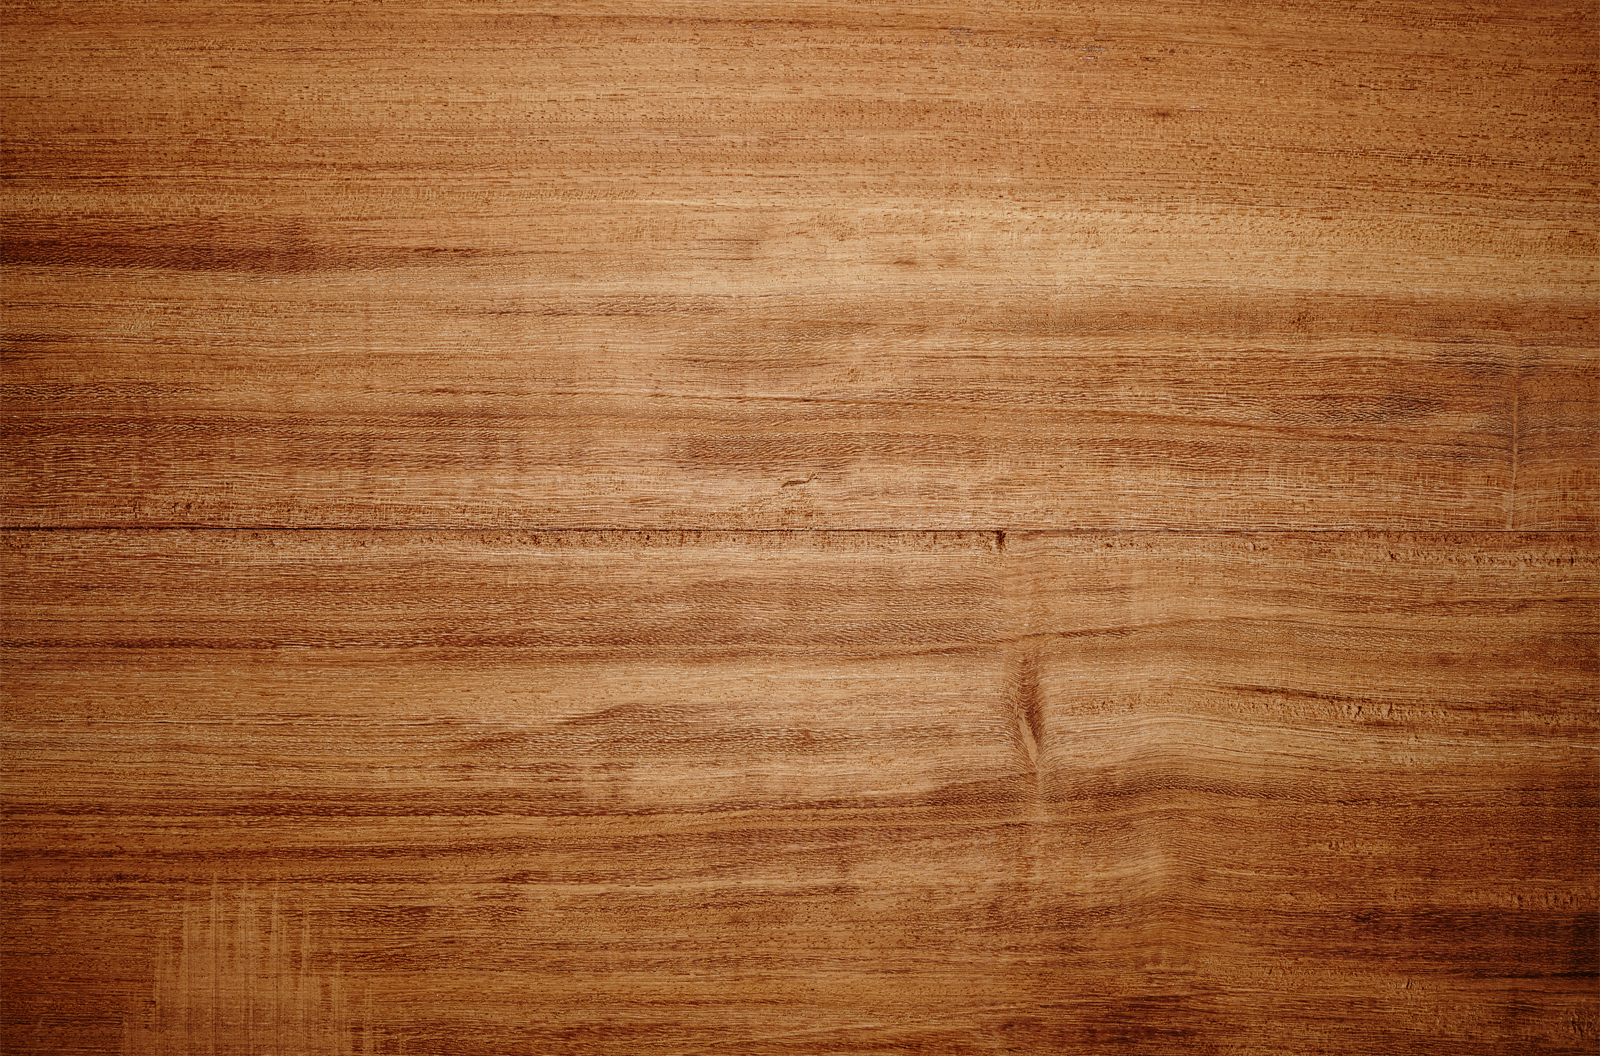 Overhead view of light brown wooden table